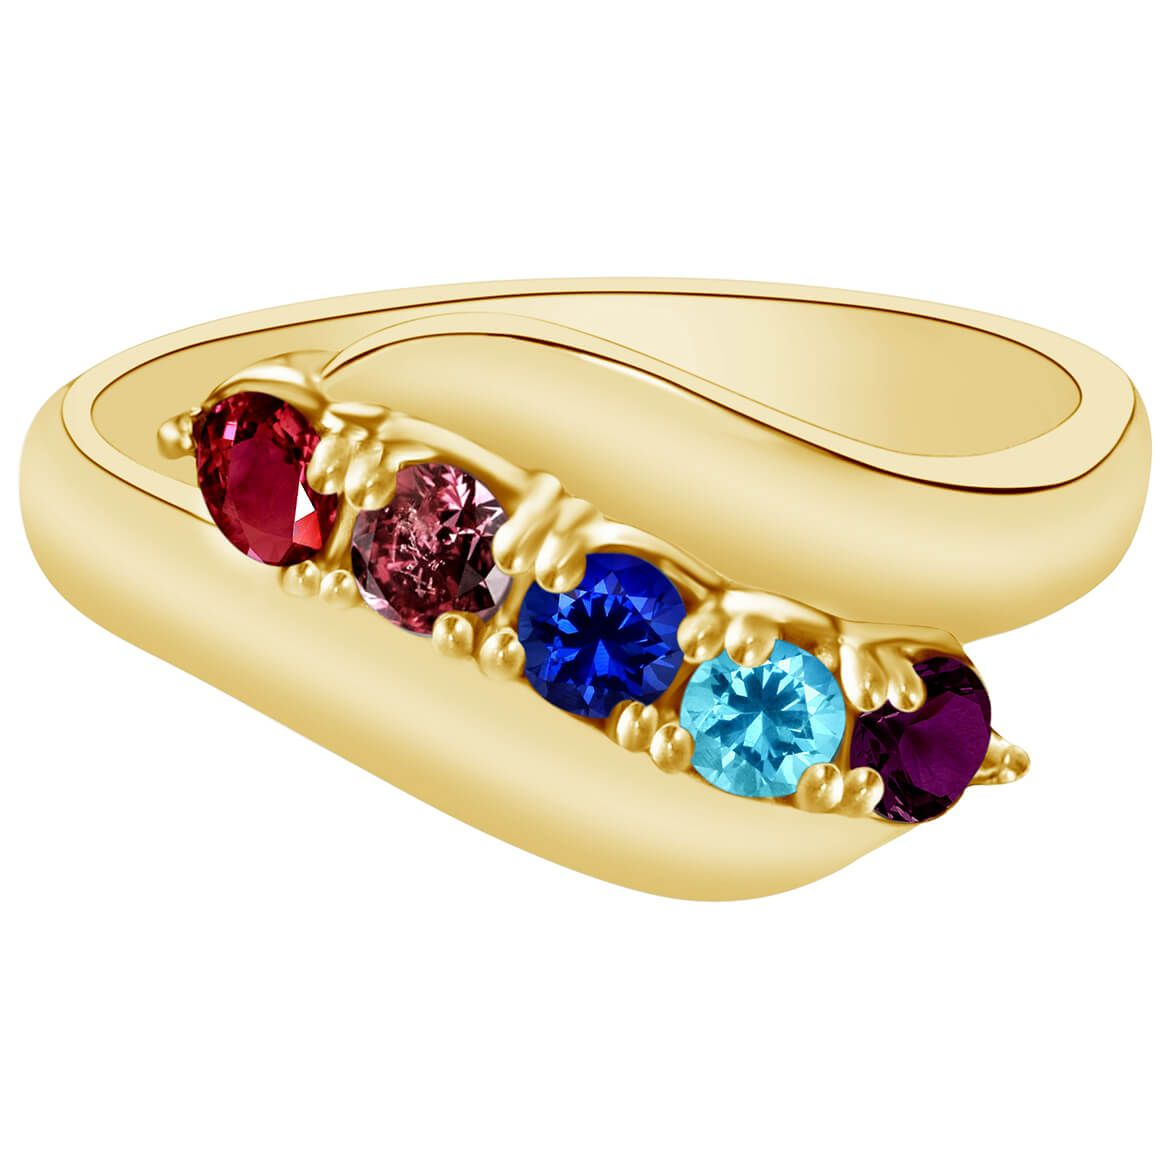 Birthstone Crystal Gold-Plated Bypass Ring - Miles Kimball-365551